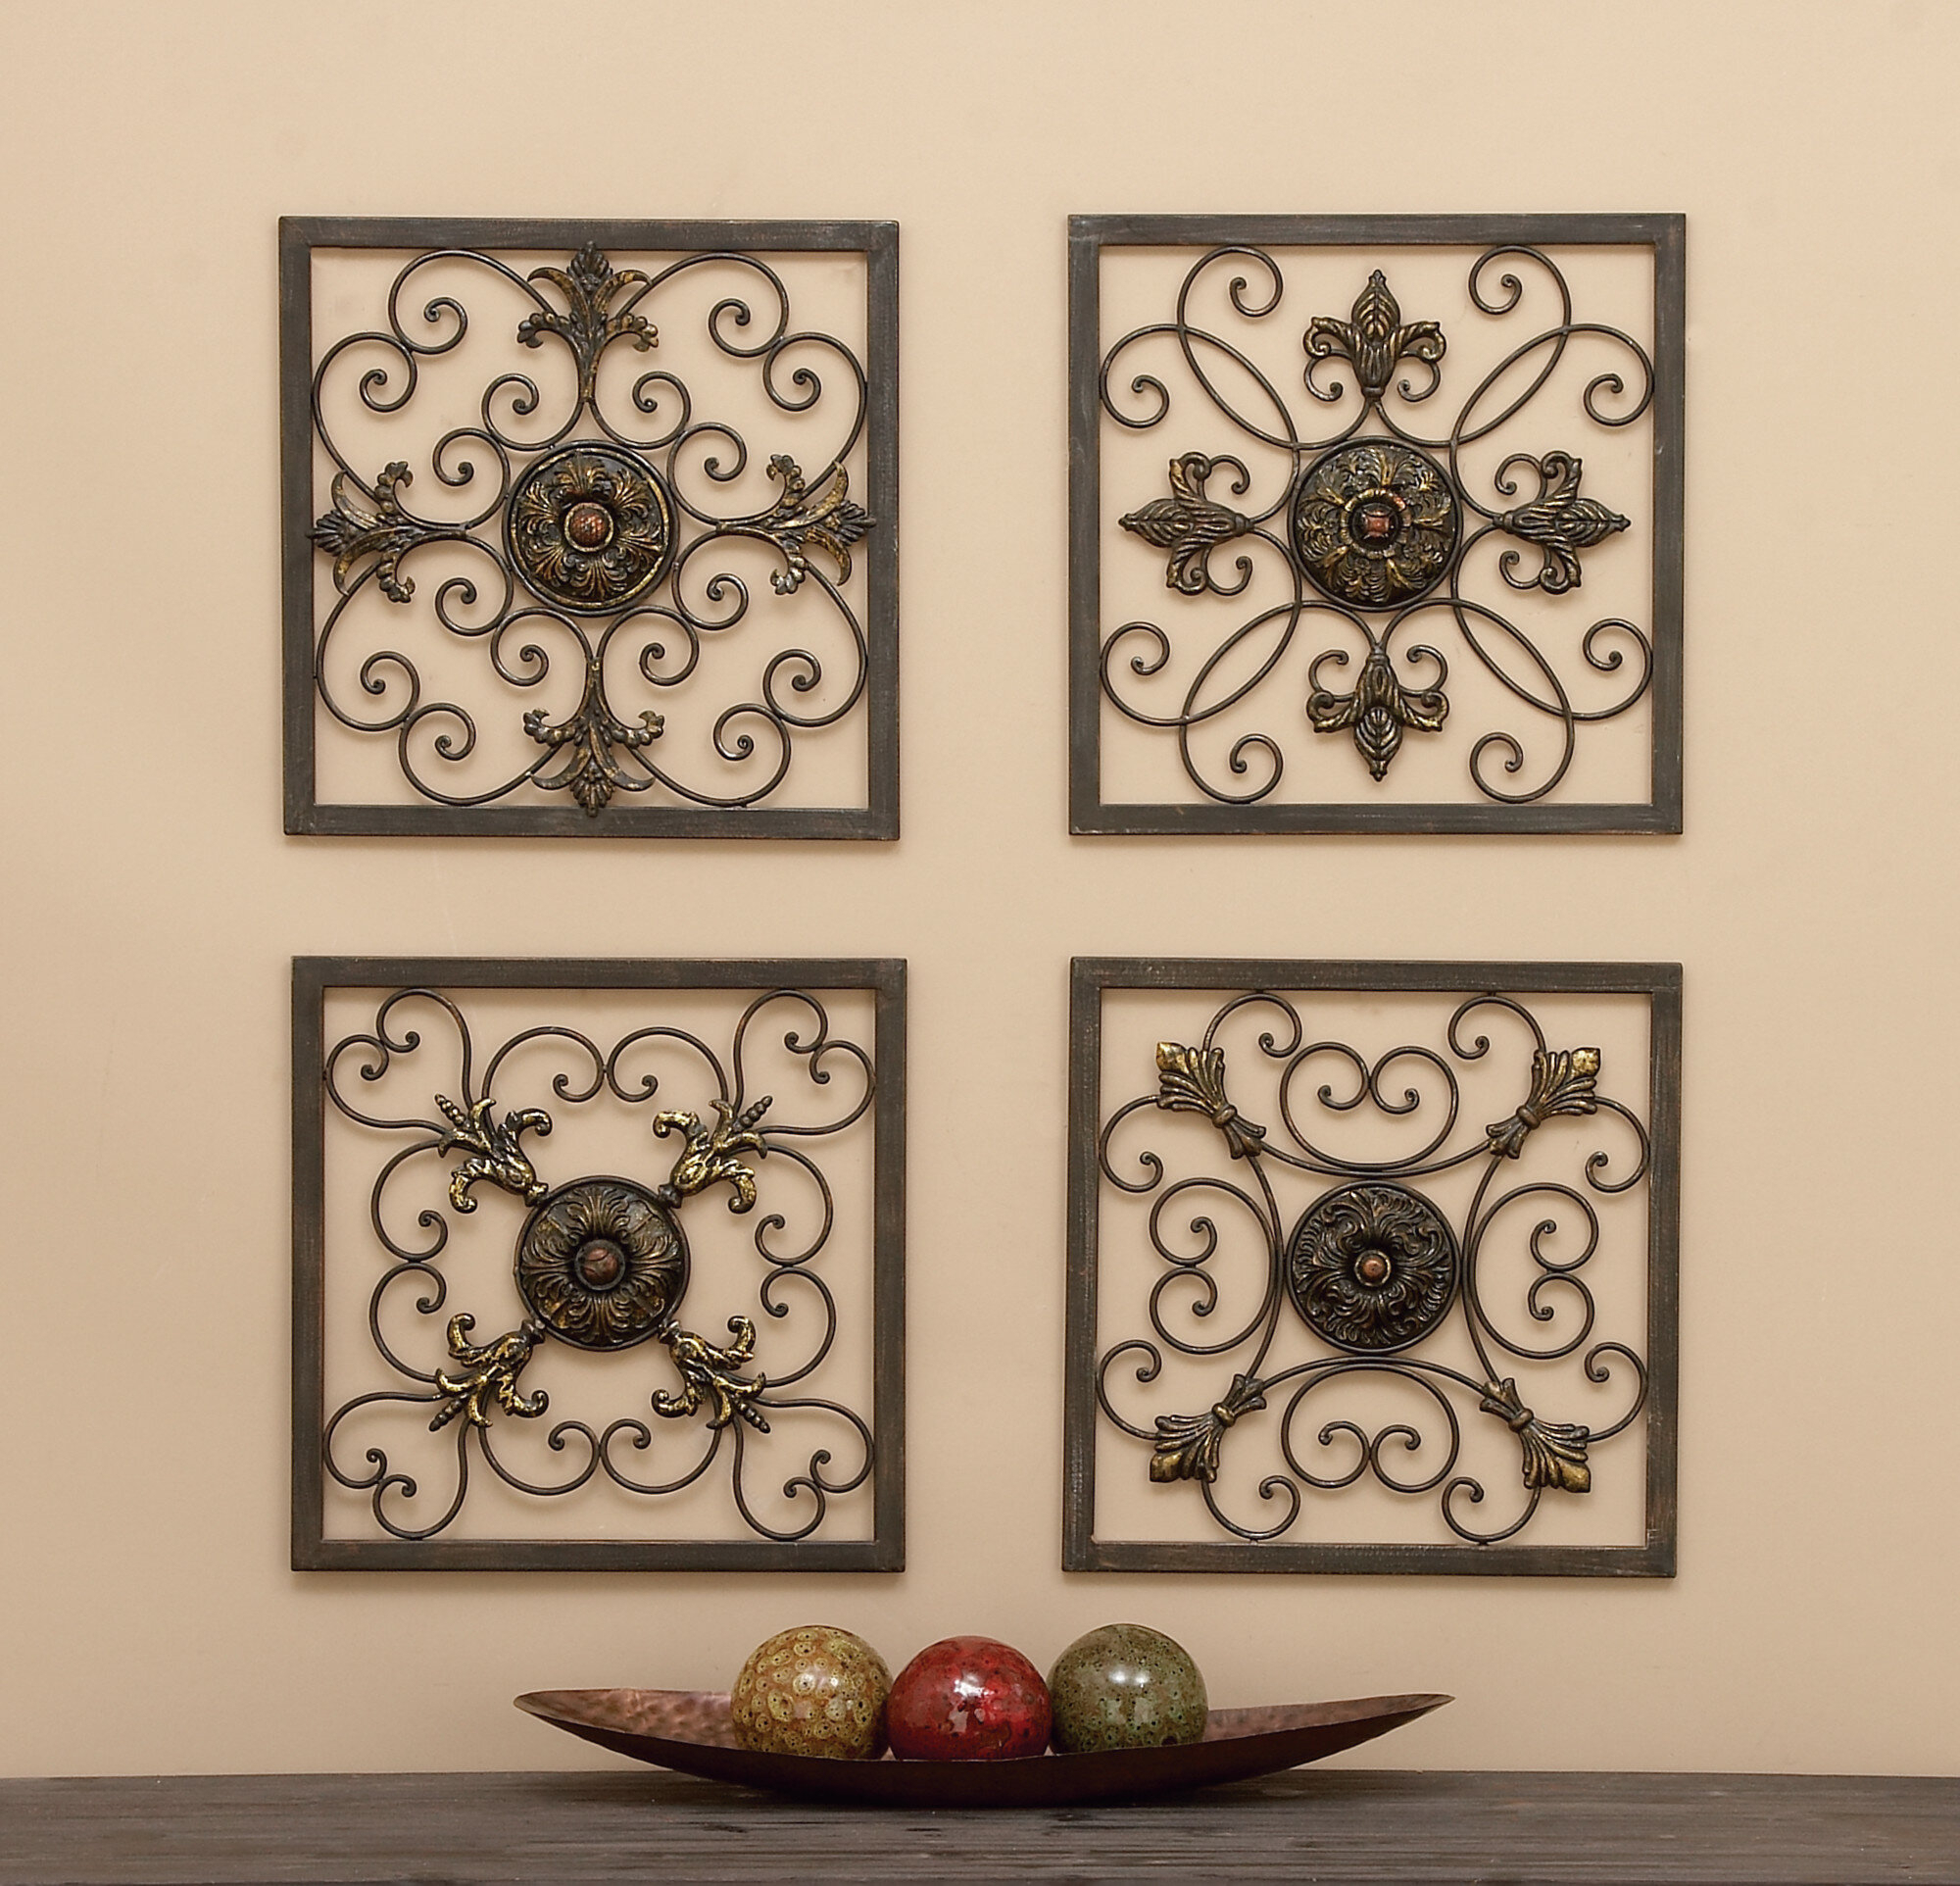 Wayfair Intended For Favorite 4 Piece Wall Decor Sets By Charlton Home (View 19 of 20)